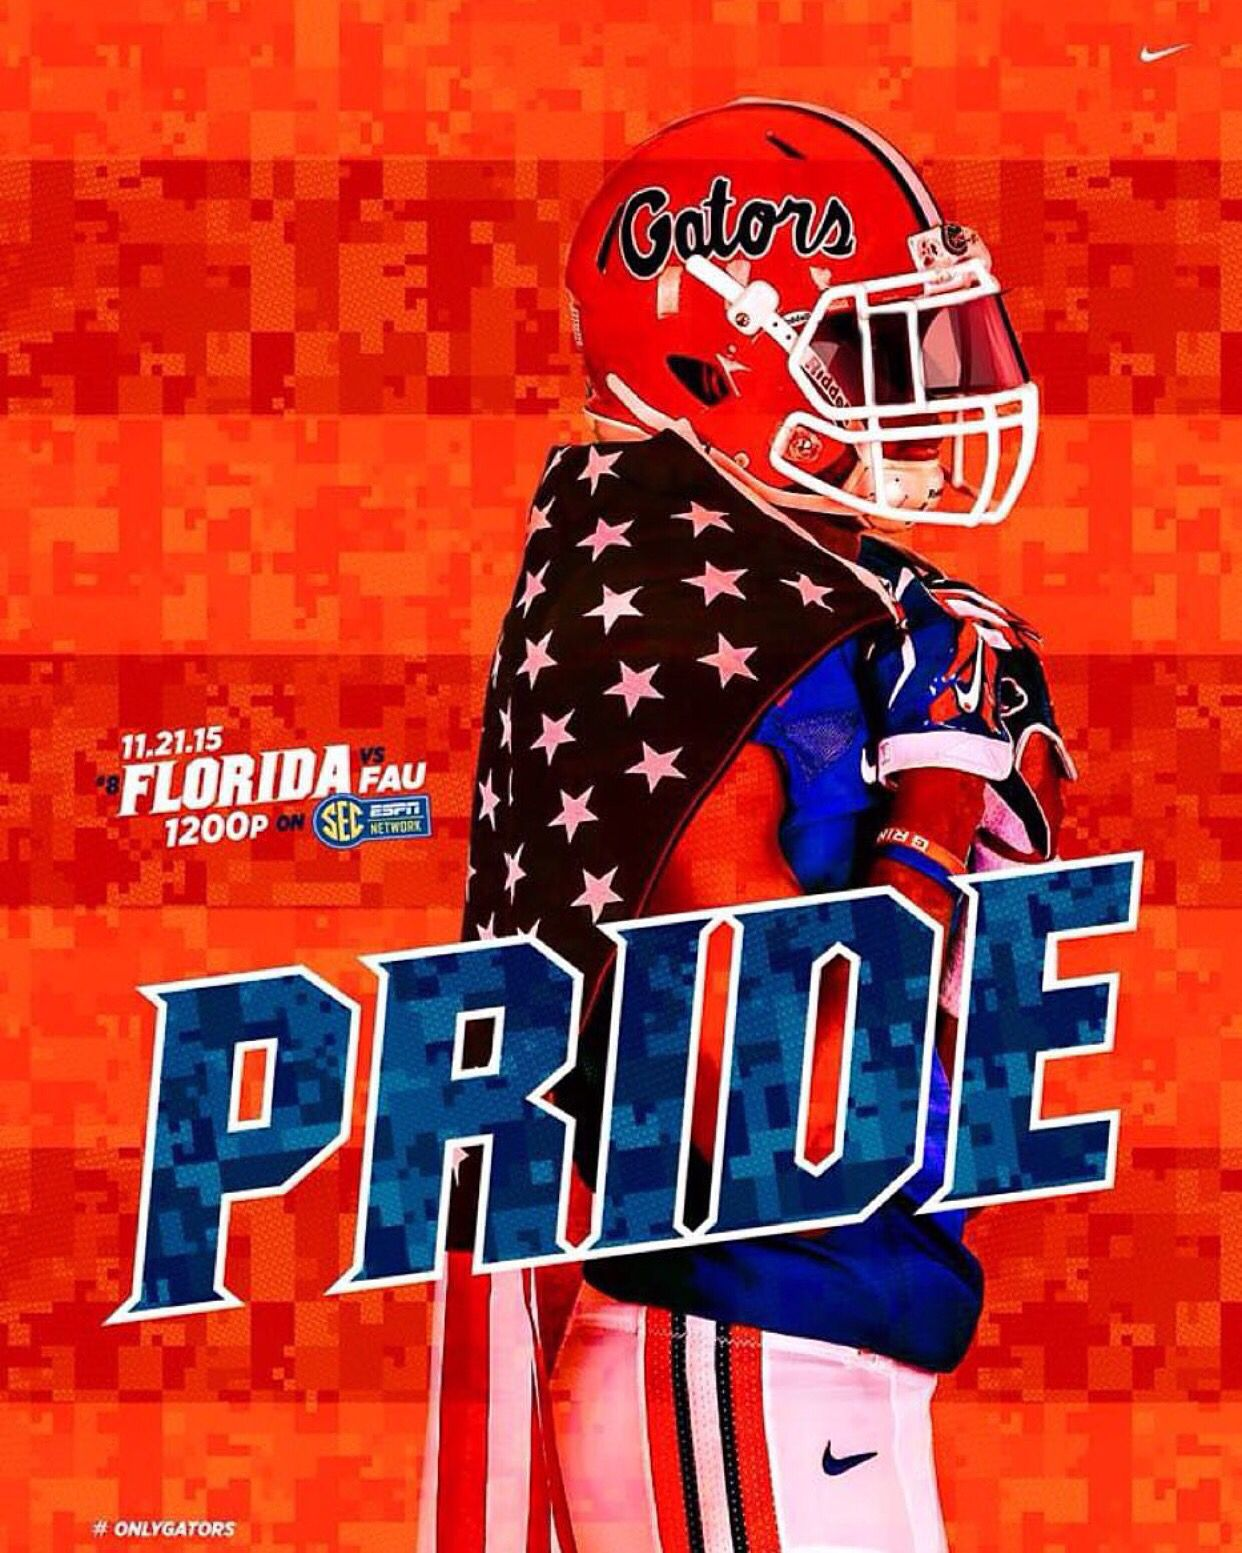 Pin By Jeff Ryburn On It S Great To Be A Florida Gator Florida Gators Wallpaper Florida Gators Football Florida Football